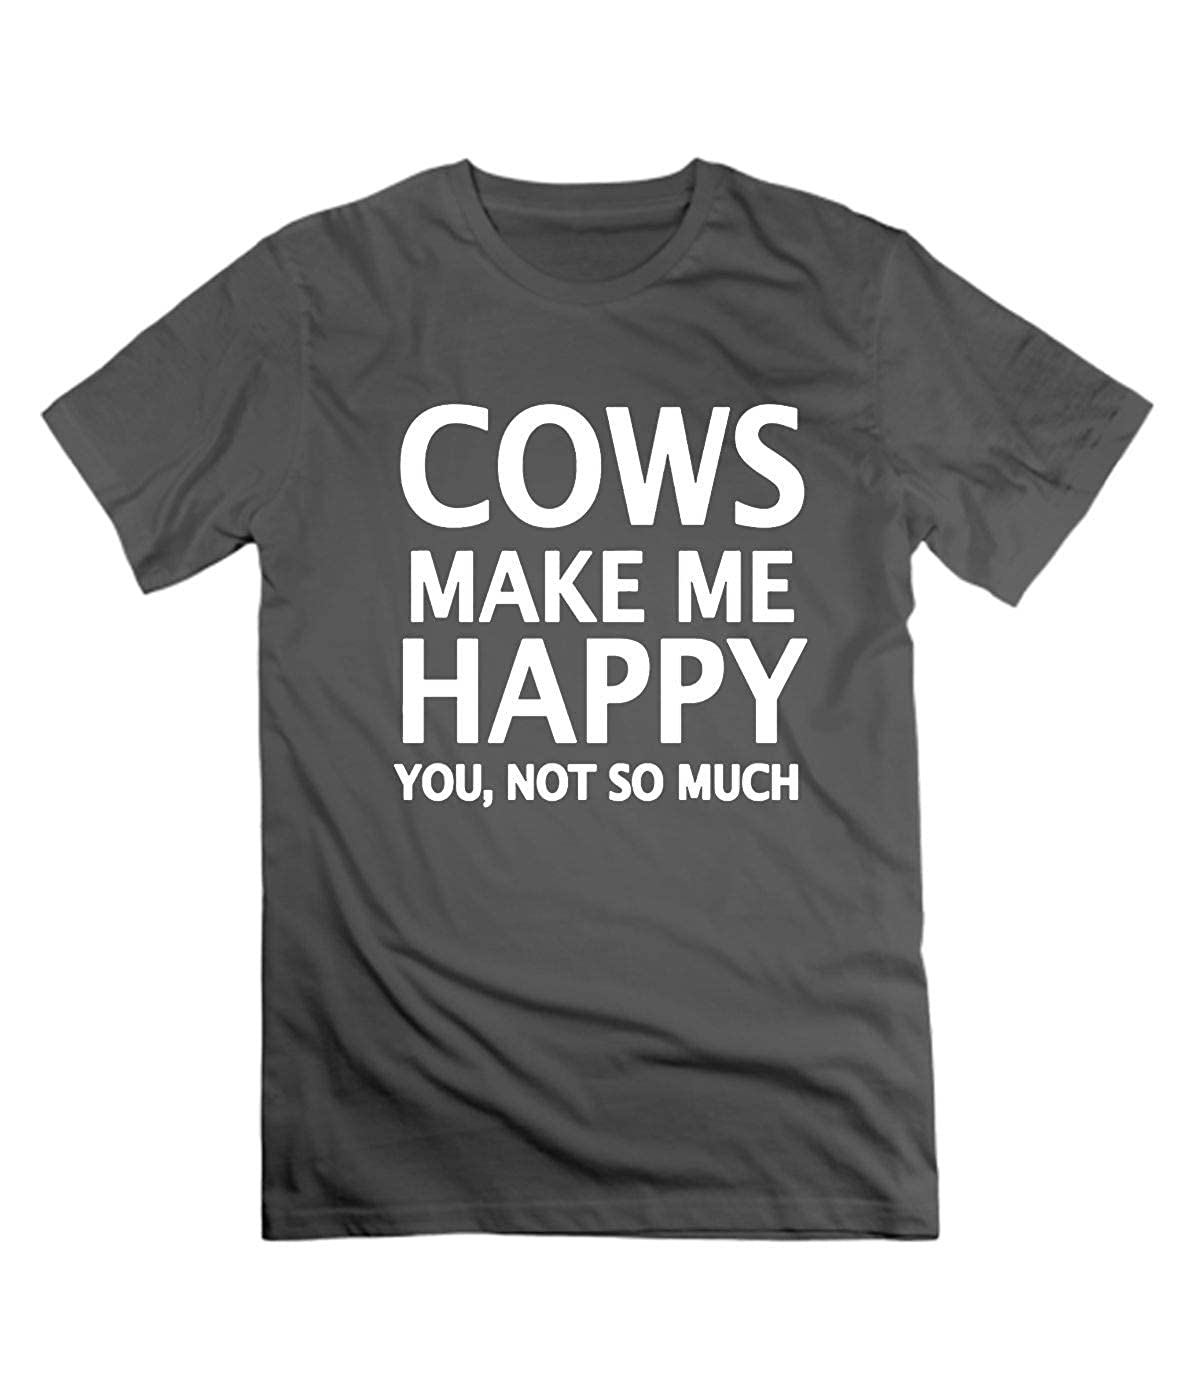 Cows Make Me Happy You,Not So Much T-Shirt for Man